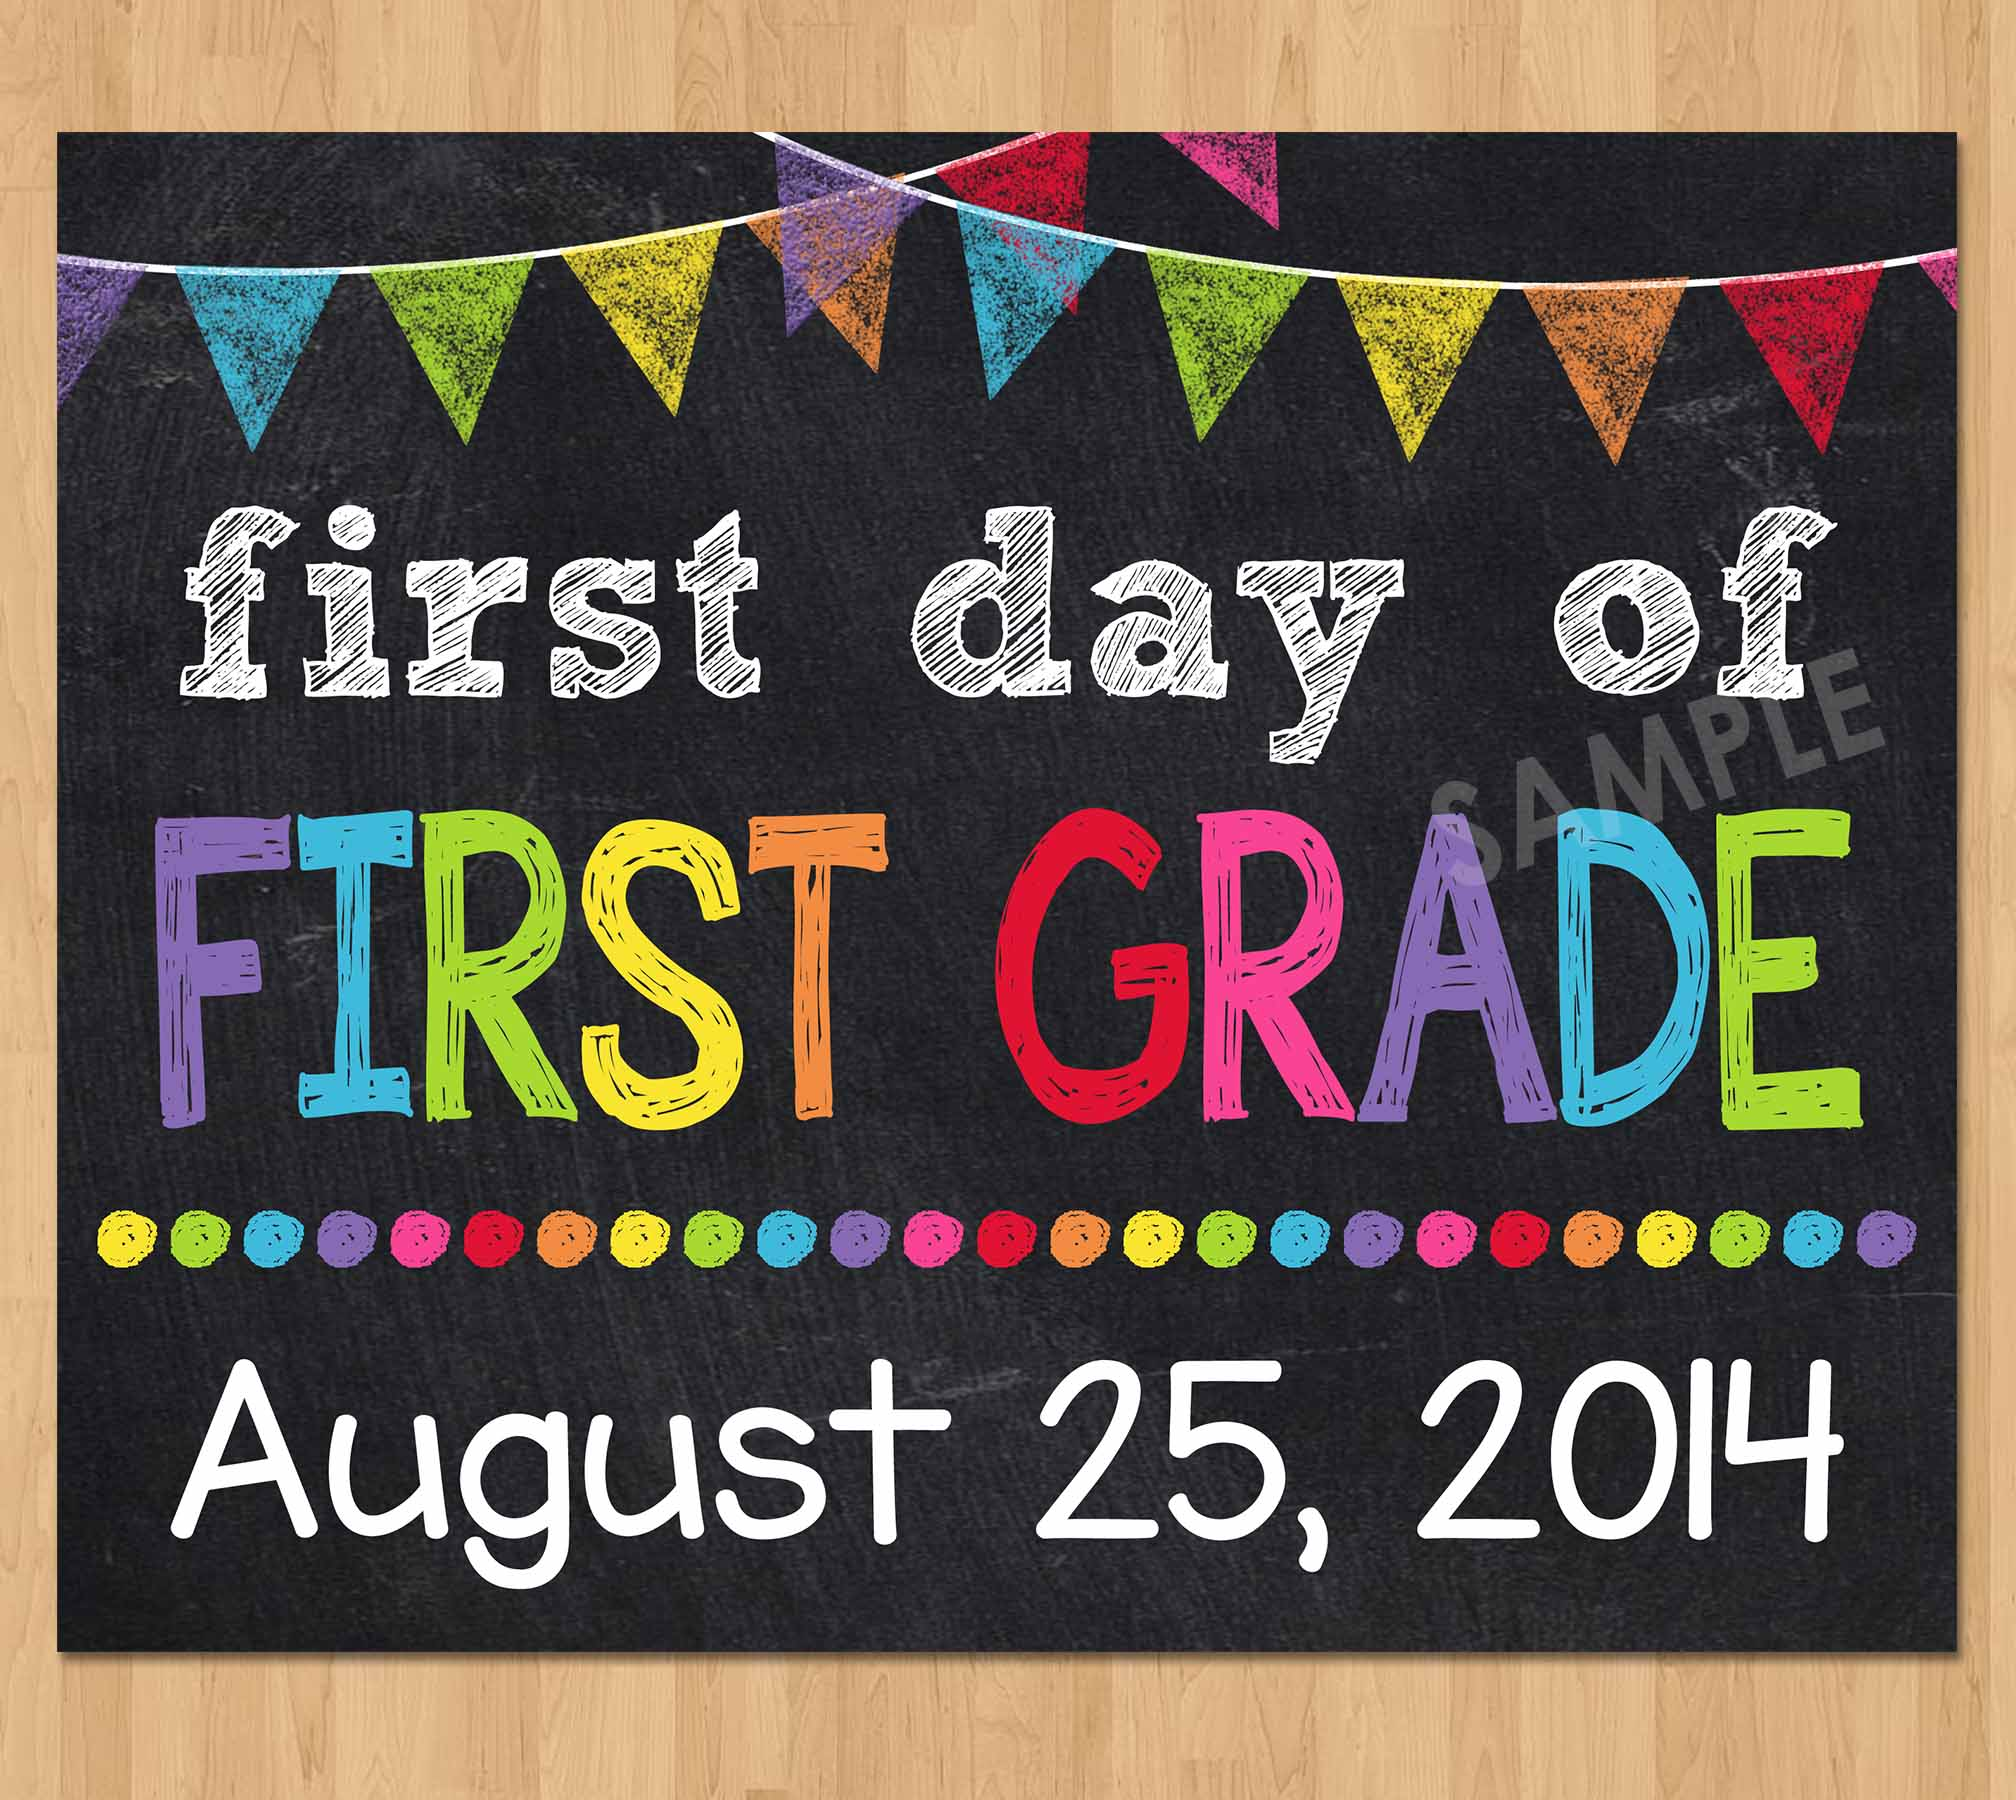 photograph about First Day of School Sign Printable called To start with Working day of Initially Quality Signal, 1st Working day of Faculty Chalkboard Signal Printable Photograph Prop, ANY Dimensions or Quality